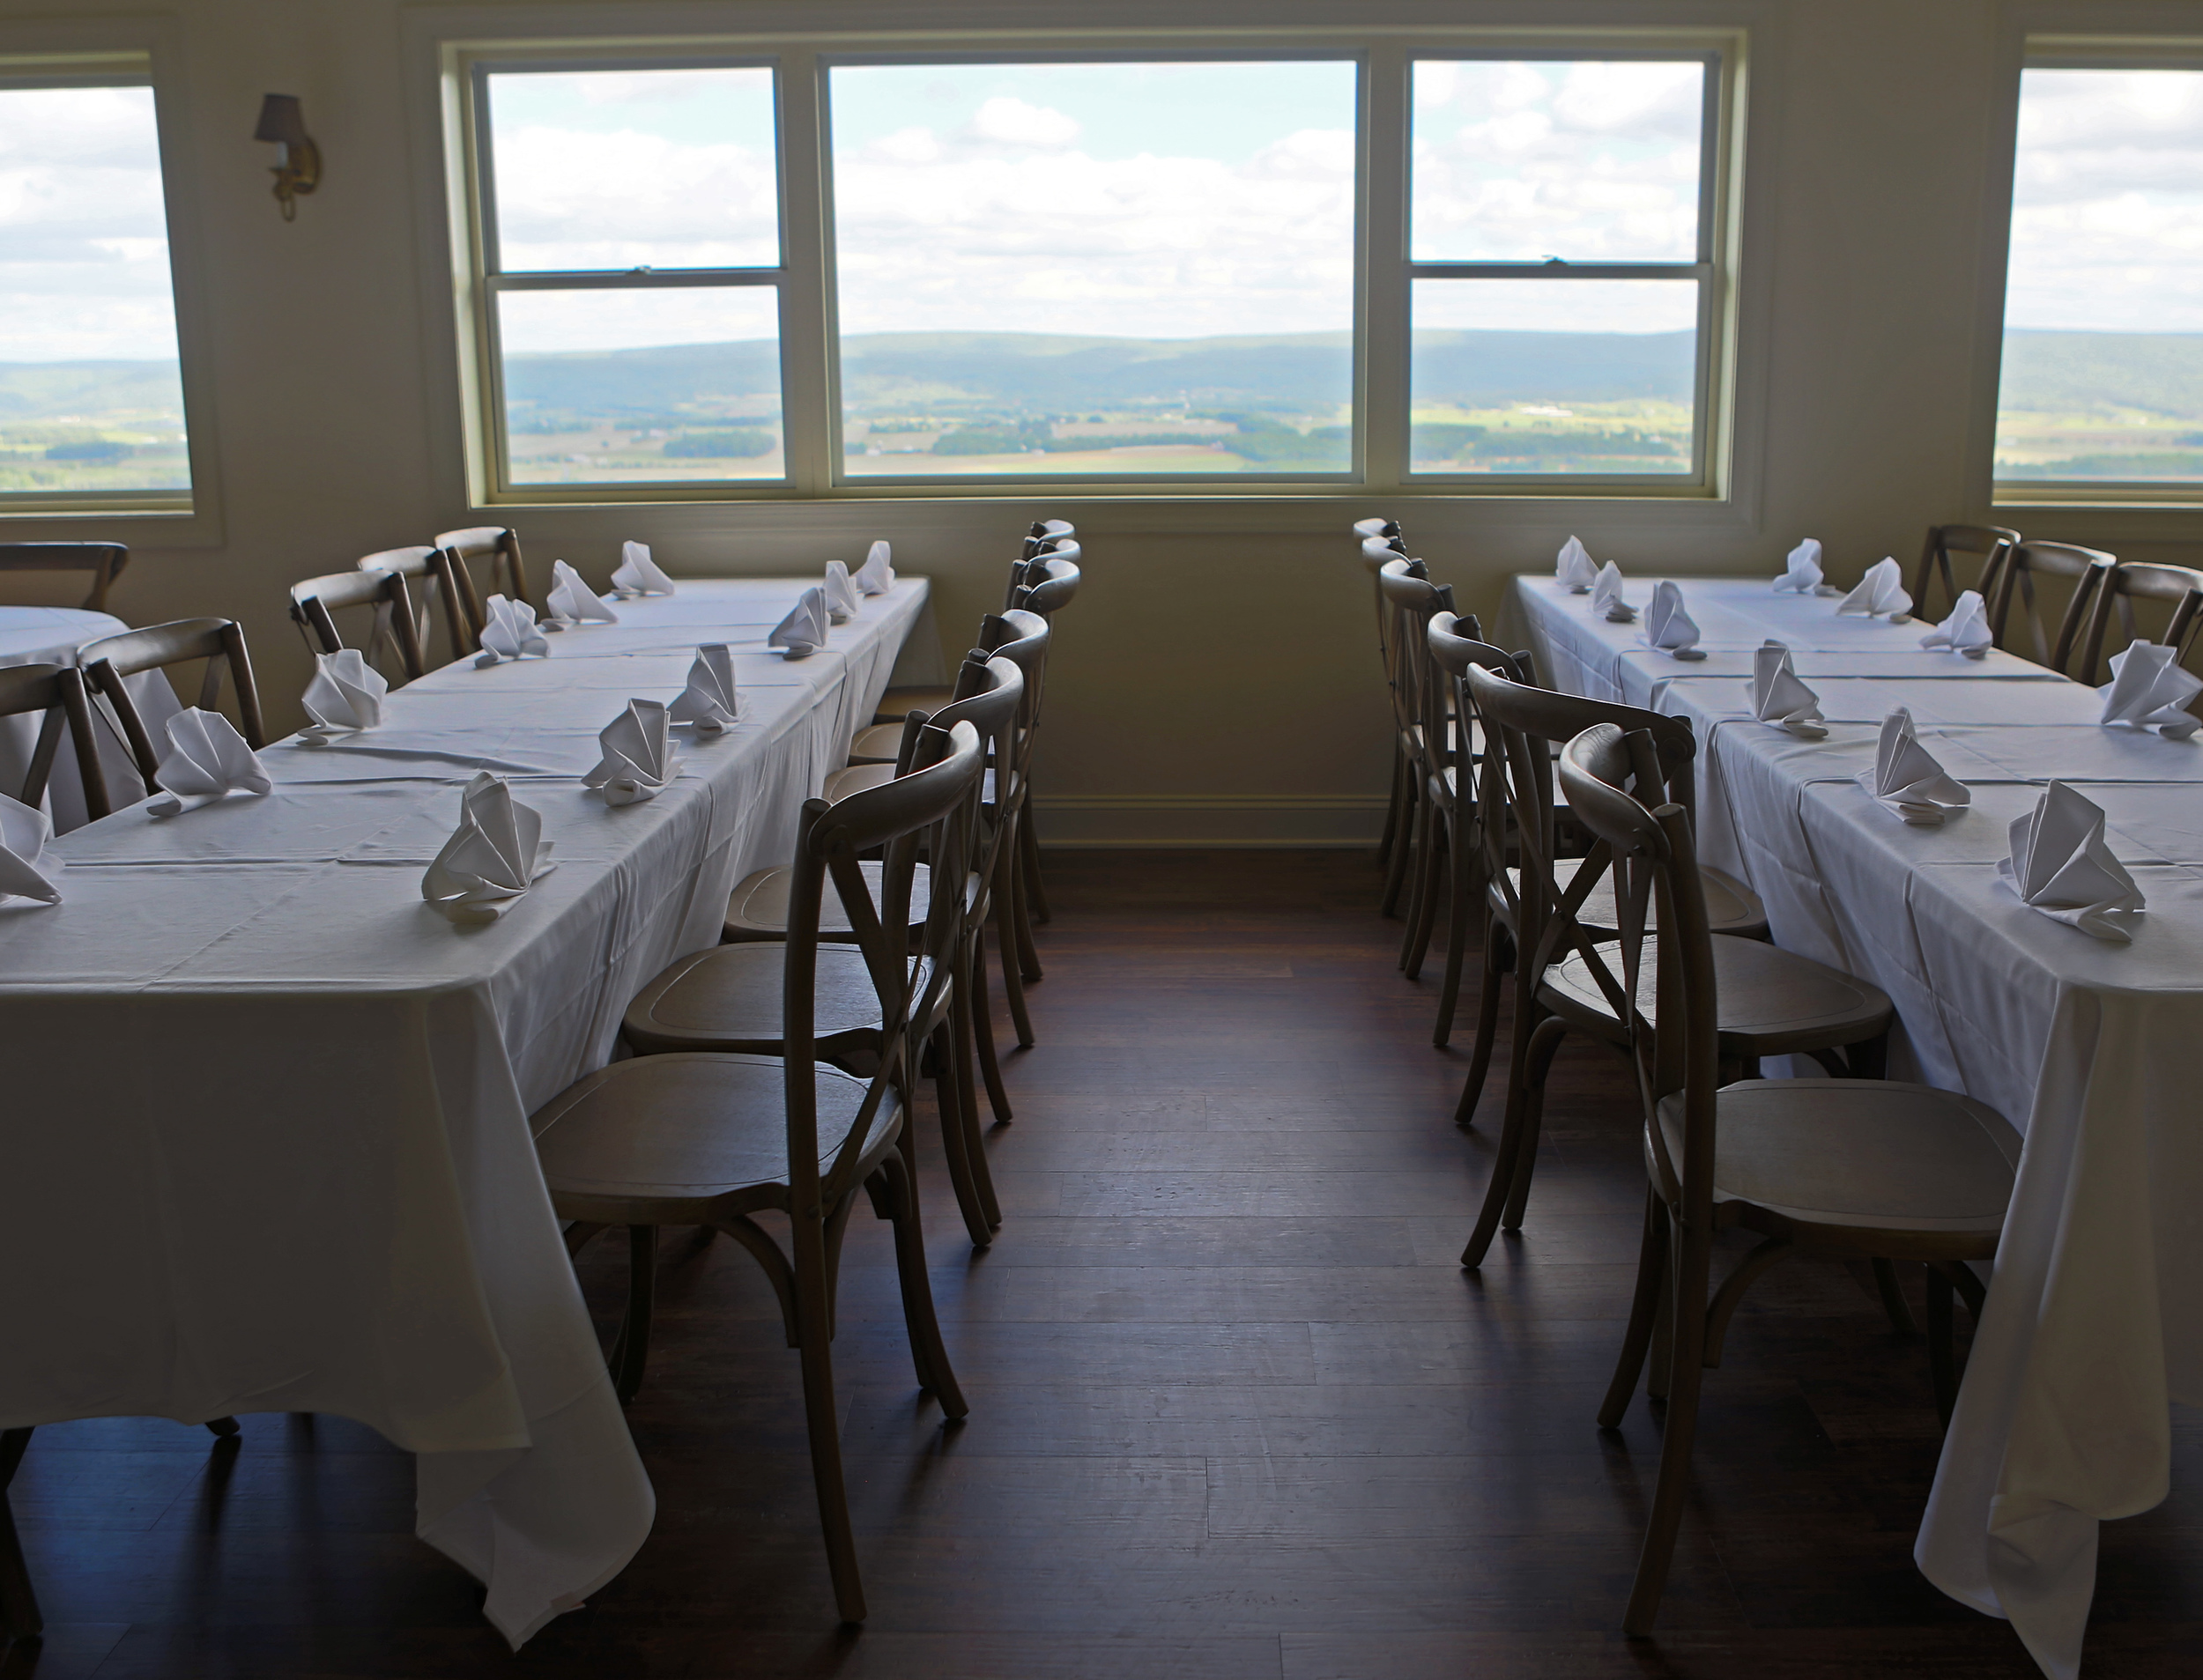 Harrison's Catering new event center Above the Valley' main dining room located on North Pennsylvania Avenue in Centre Hall overlooking Penns Valley.